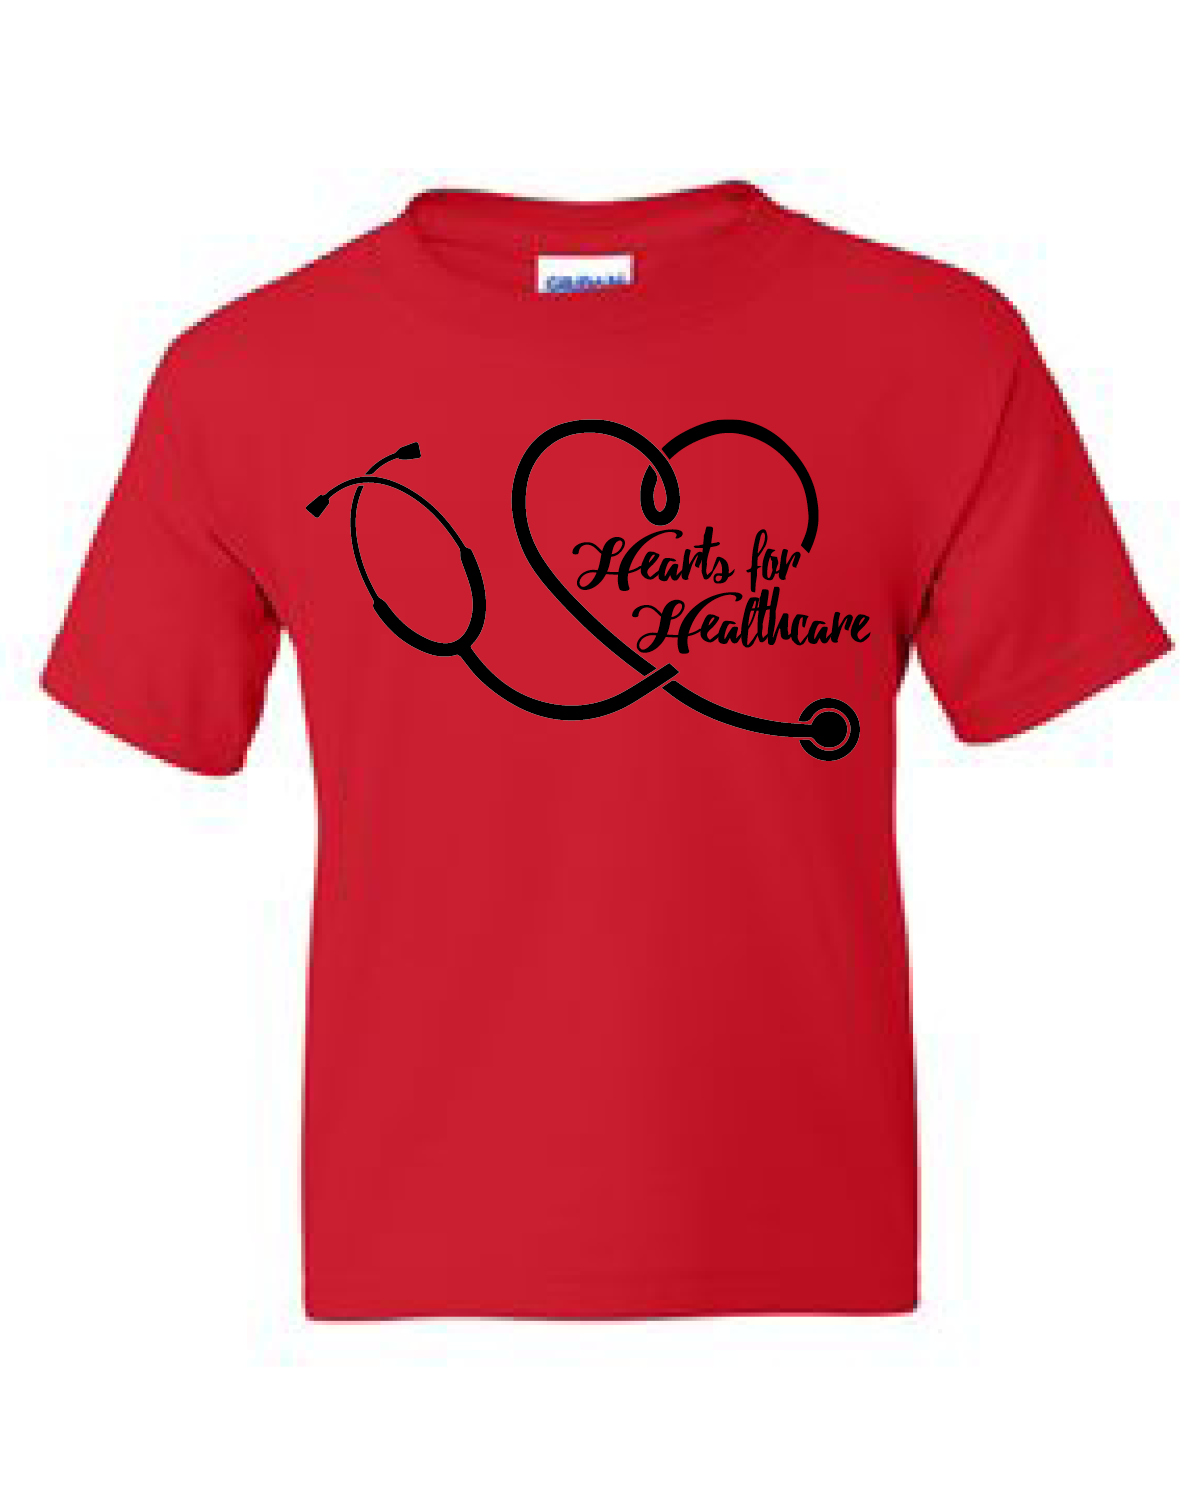 HEARTS FOR HEALTHCARE (YOUTH RED)